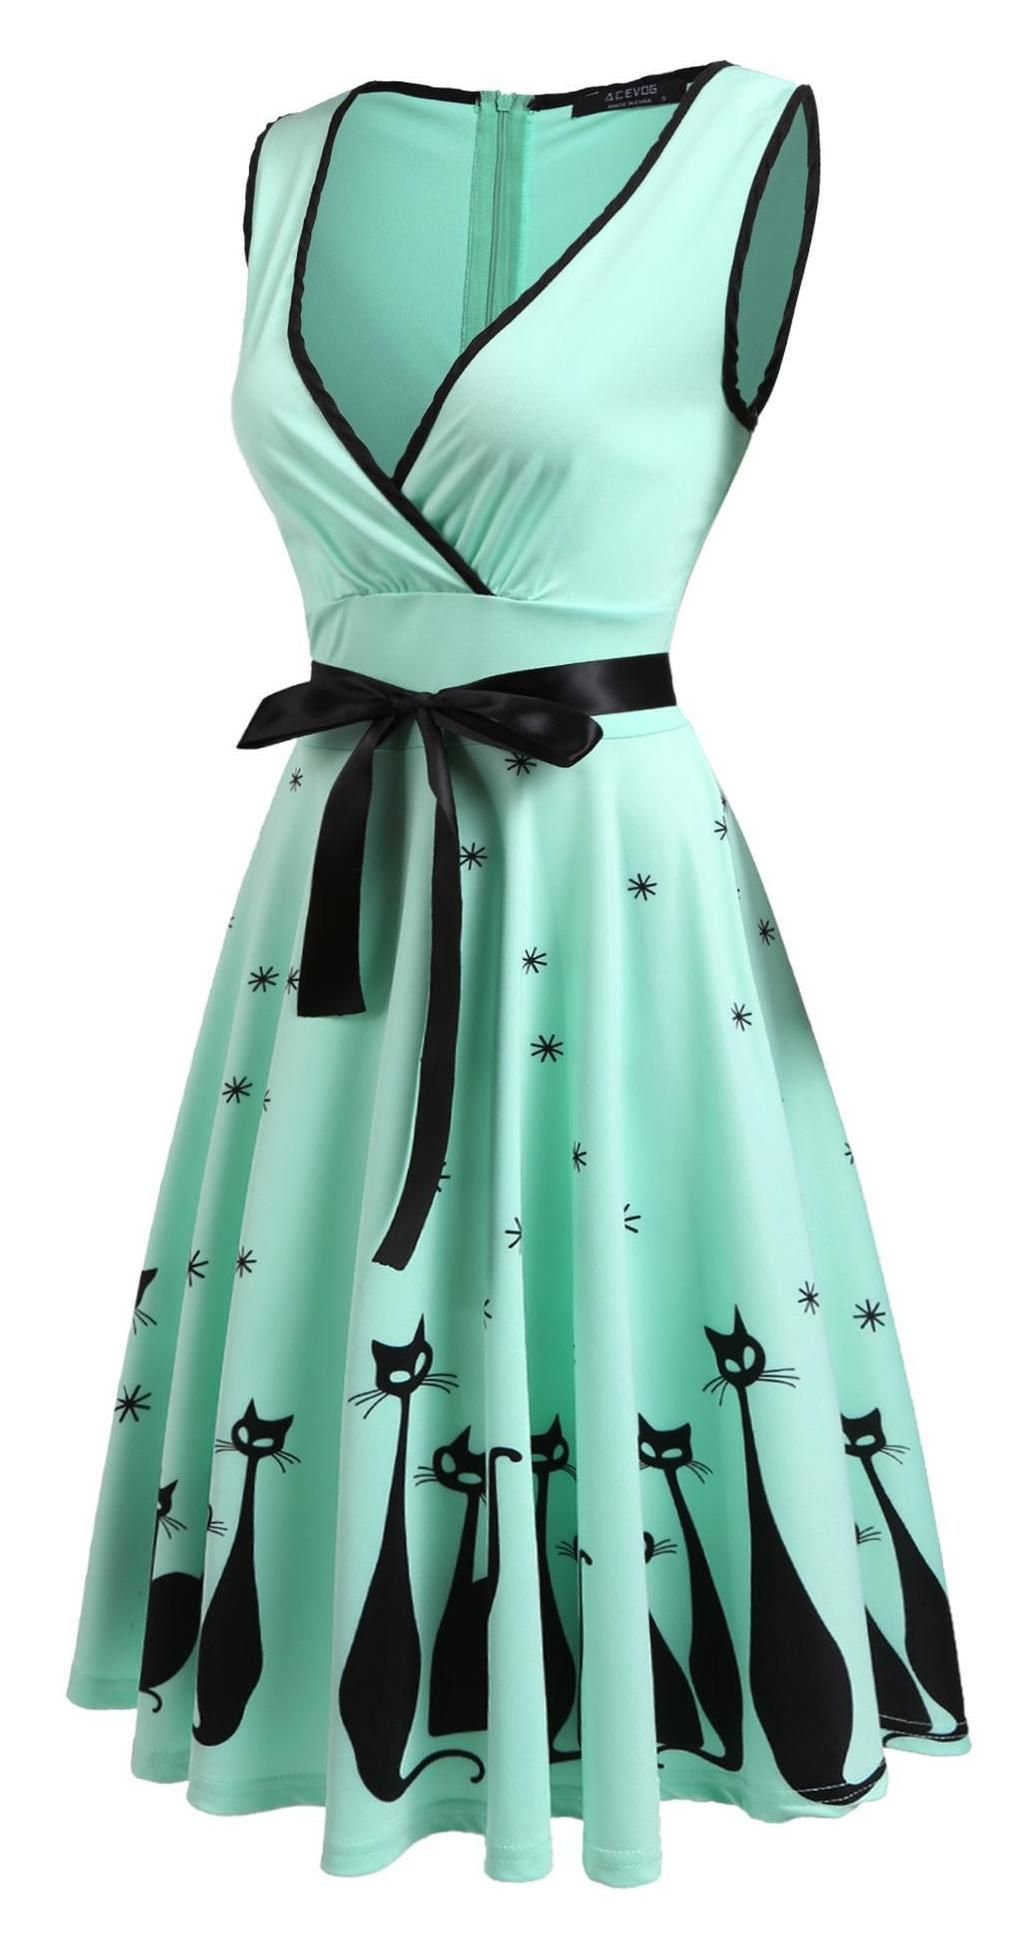 Oh my! What a cute vintage style kitty dress! | Corset n clothed ...